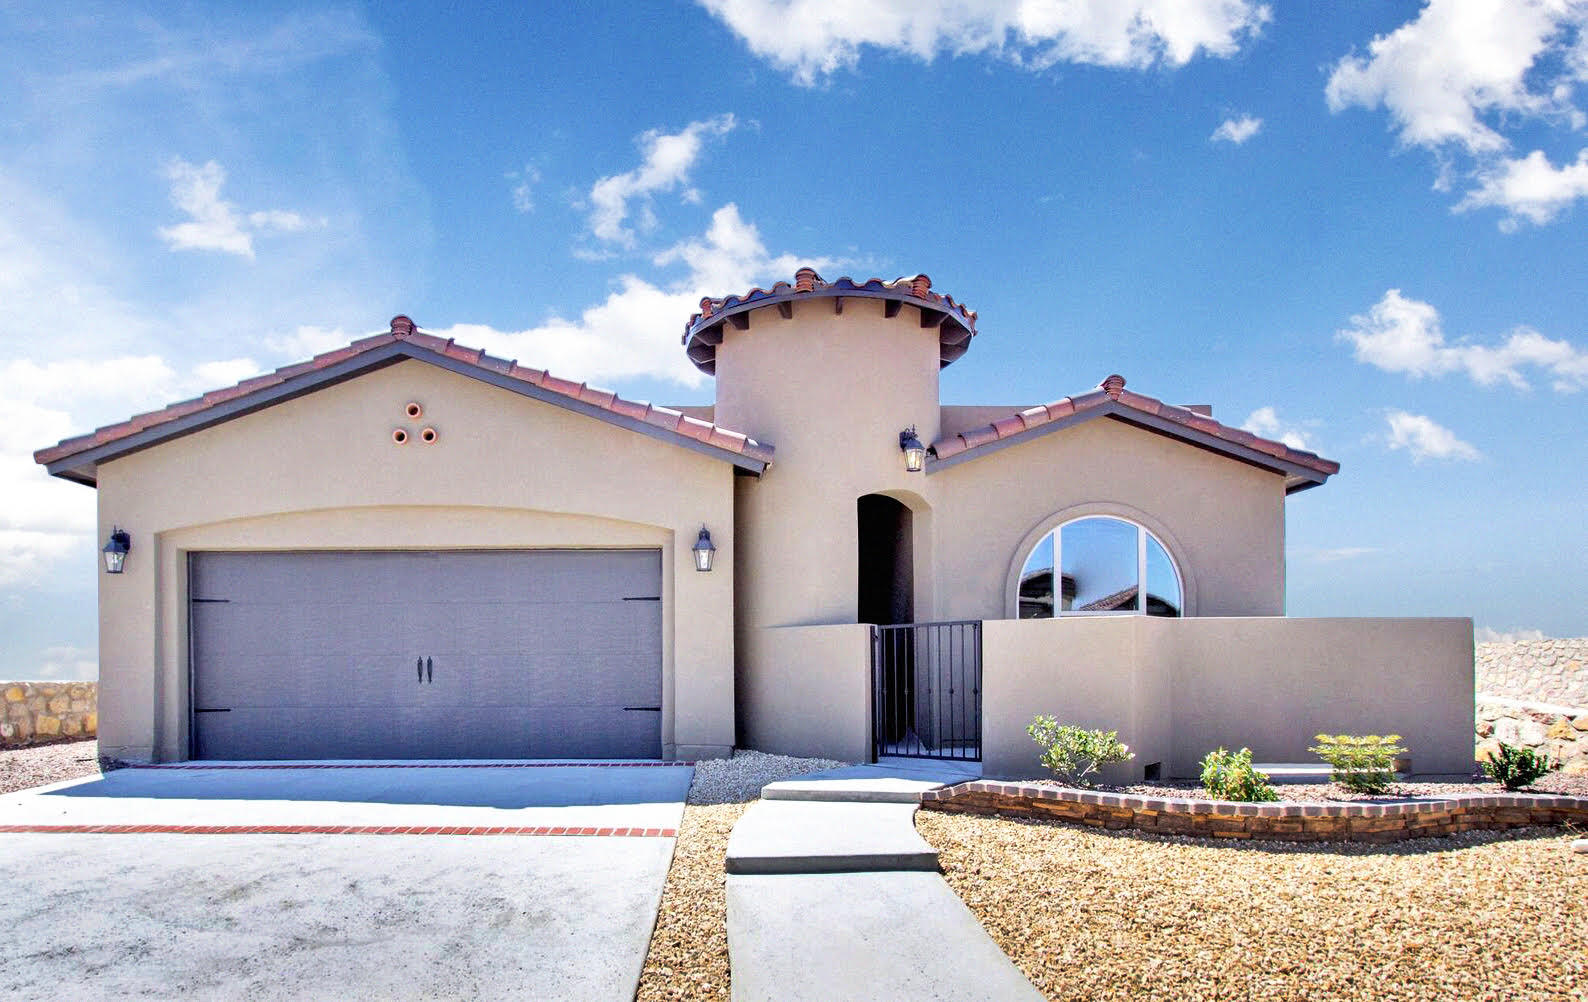 13465 Emerald Crystal, El Paso, Texas 79928, 4 Bedrooms Bedrooms, ,2 BathroomsBathrooms,Residential,For sale,Emerald Crystal,817601